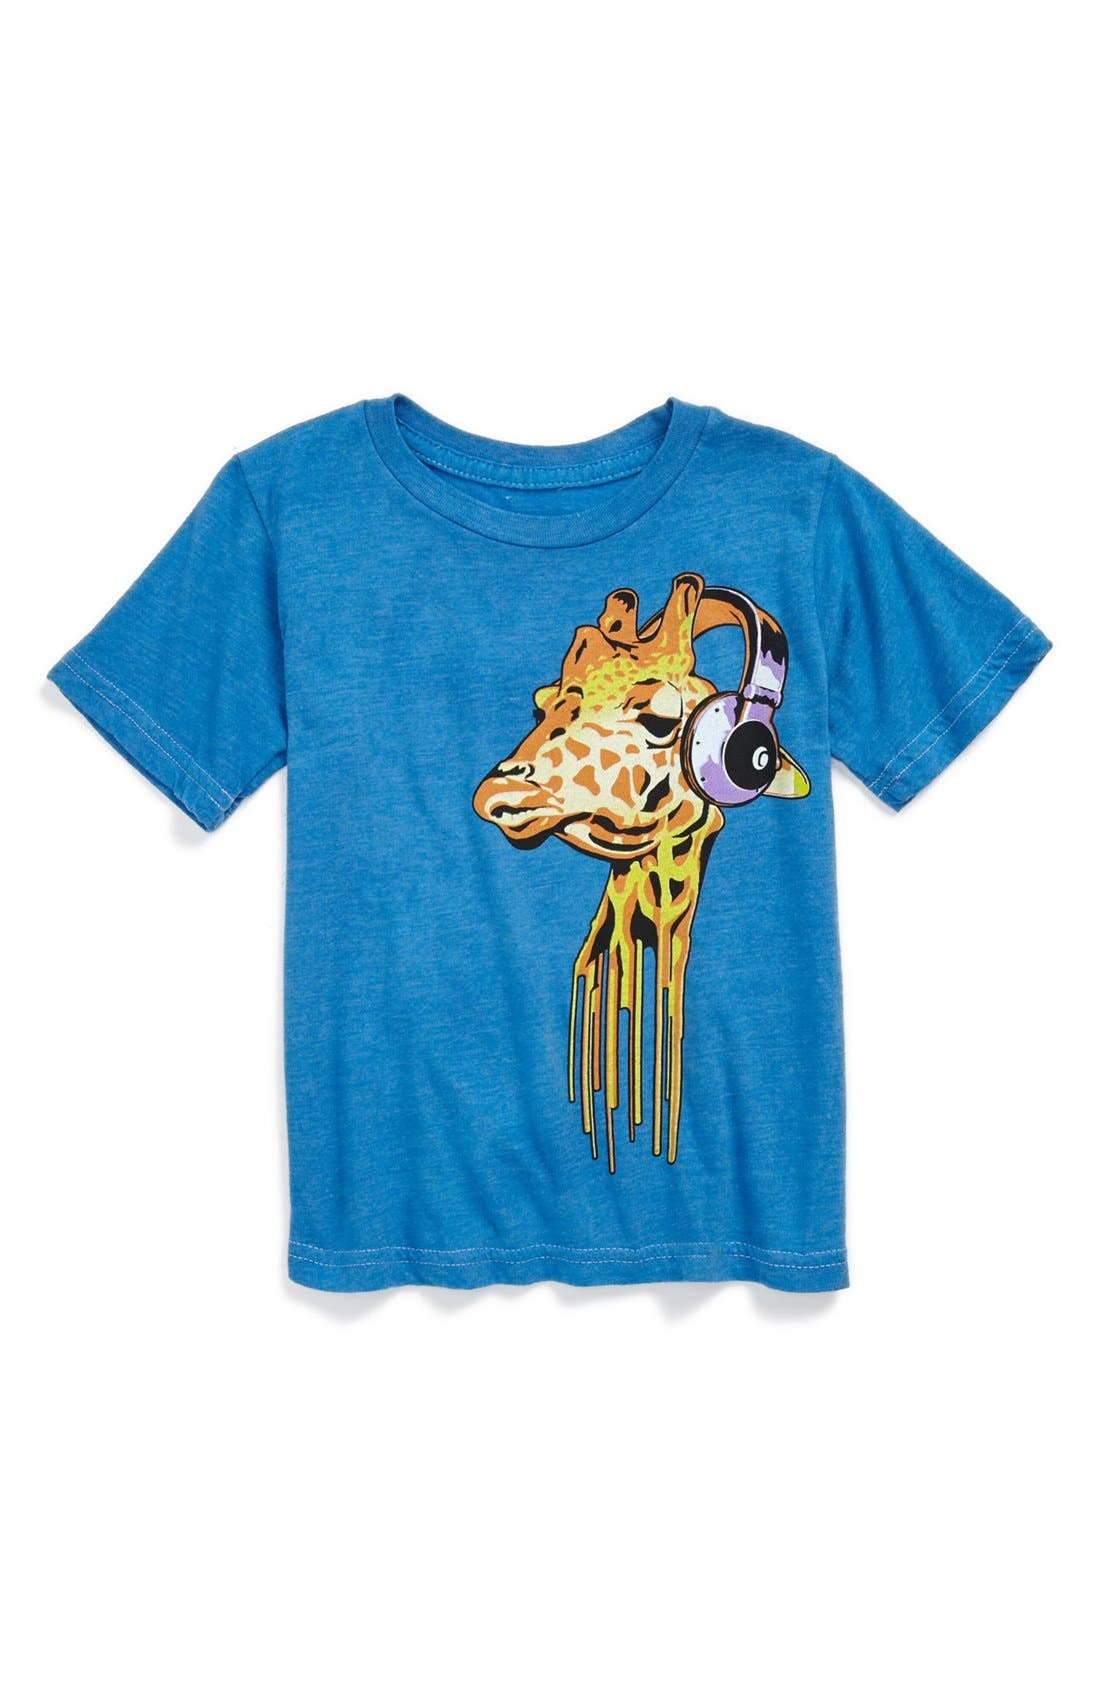 Main Image - Jem 'Heads Up Sky Diver' T-Shirt (Toddler Boys)